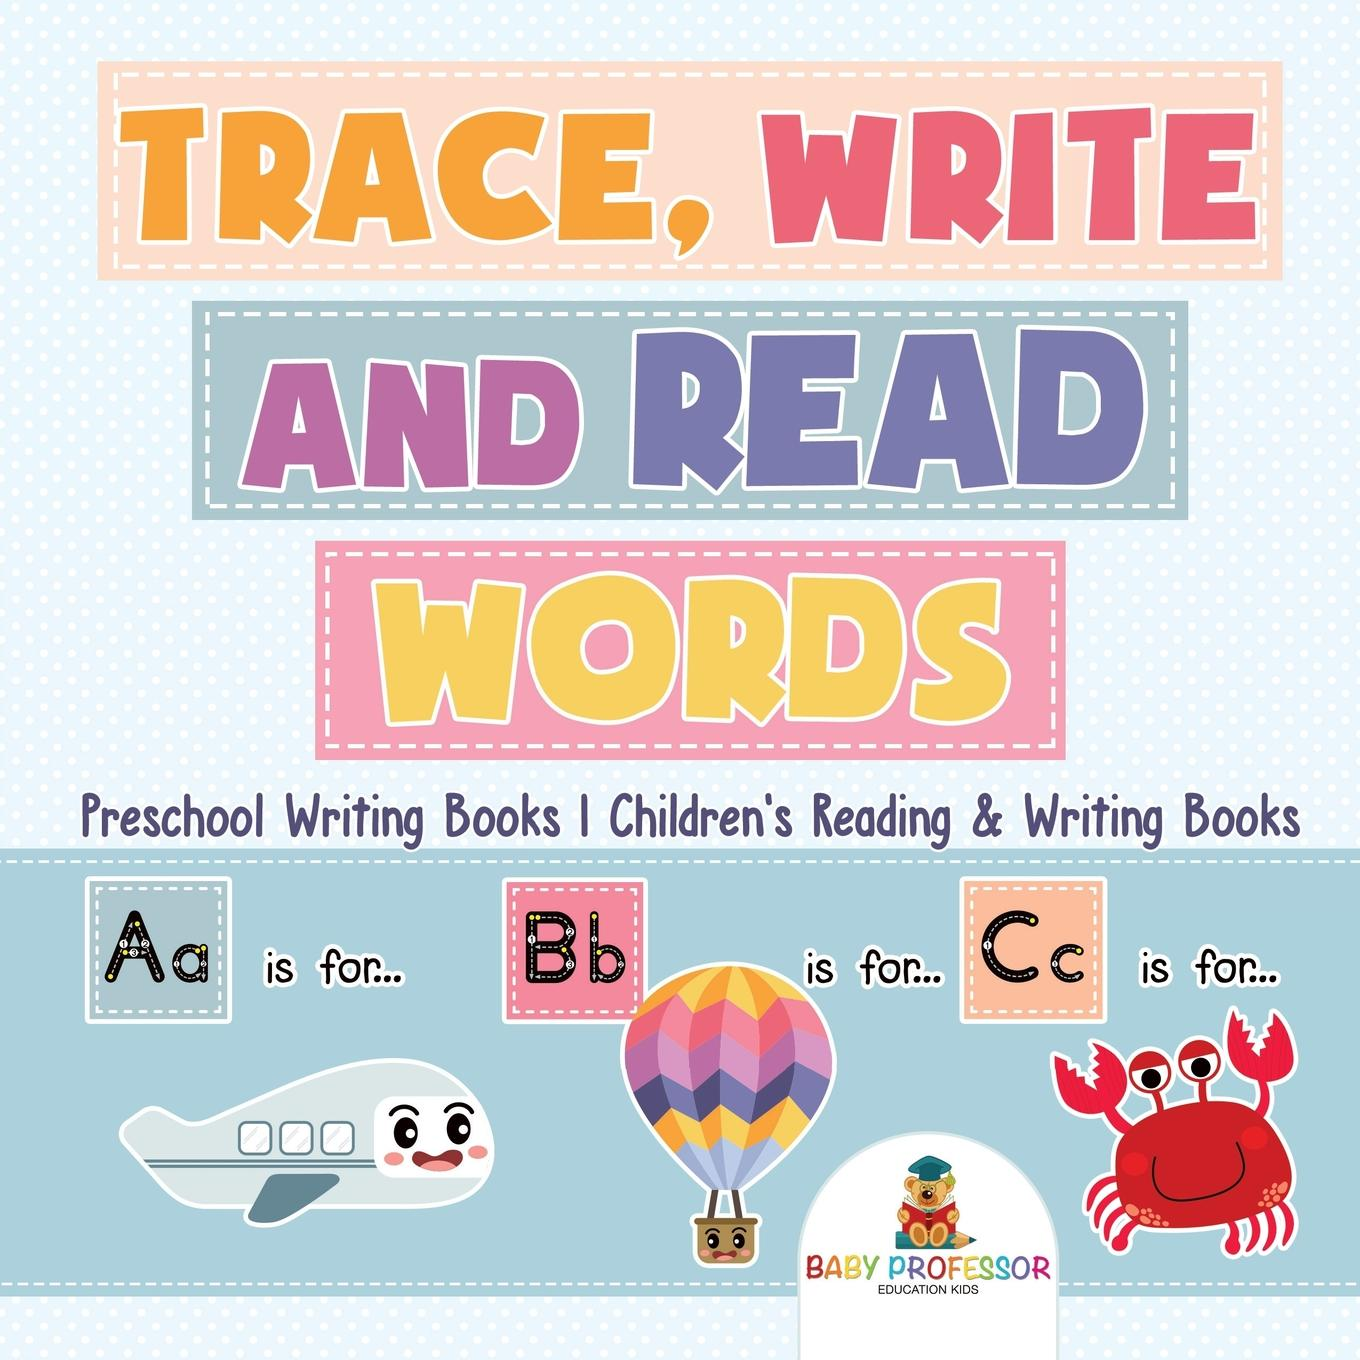 Trace, Write and Read Words - Preschool Writing Books Children's Reading & Writing Books